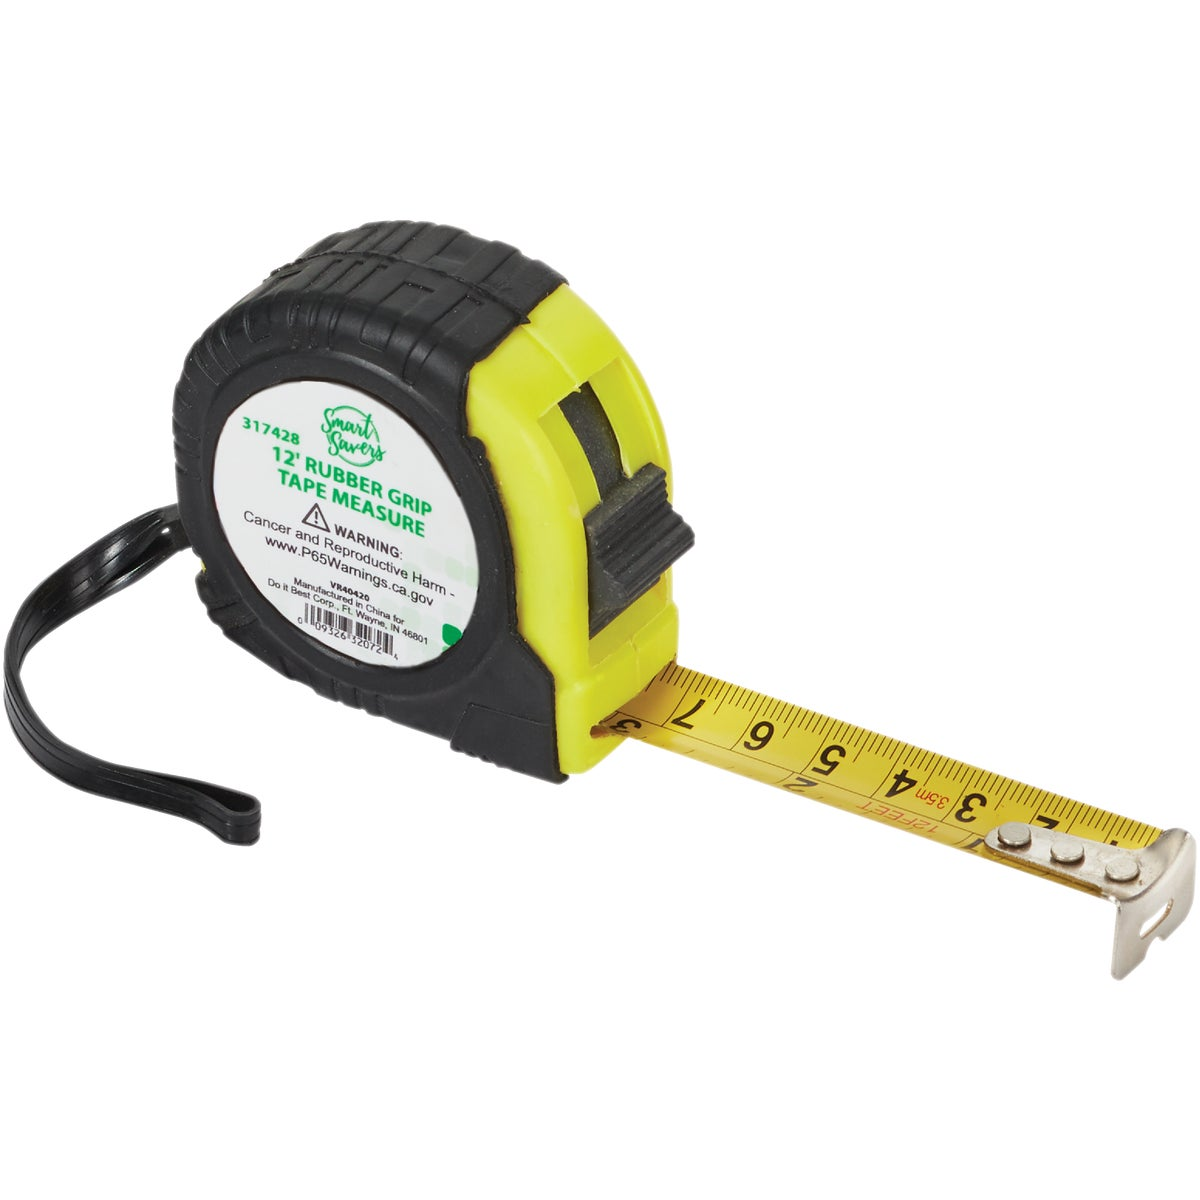 12' RBR GRP TAPE MEASURE